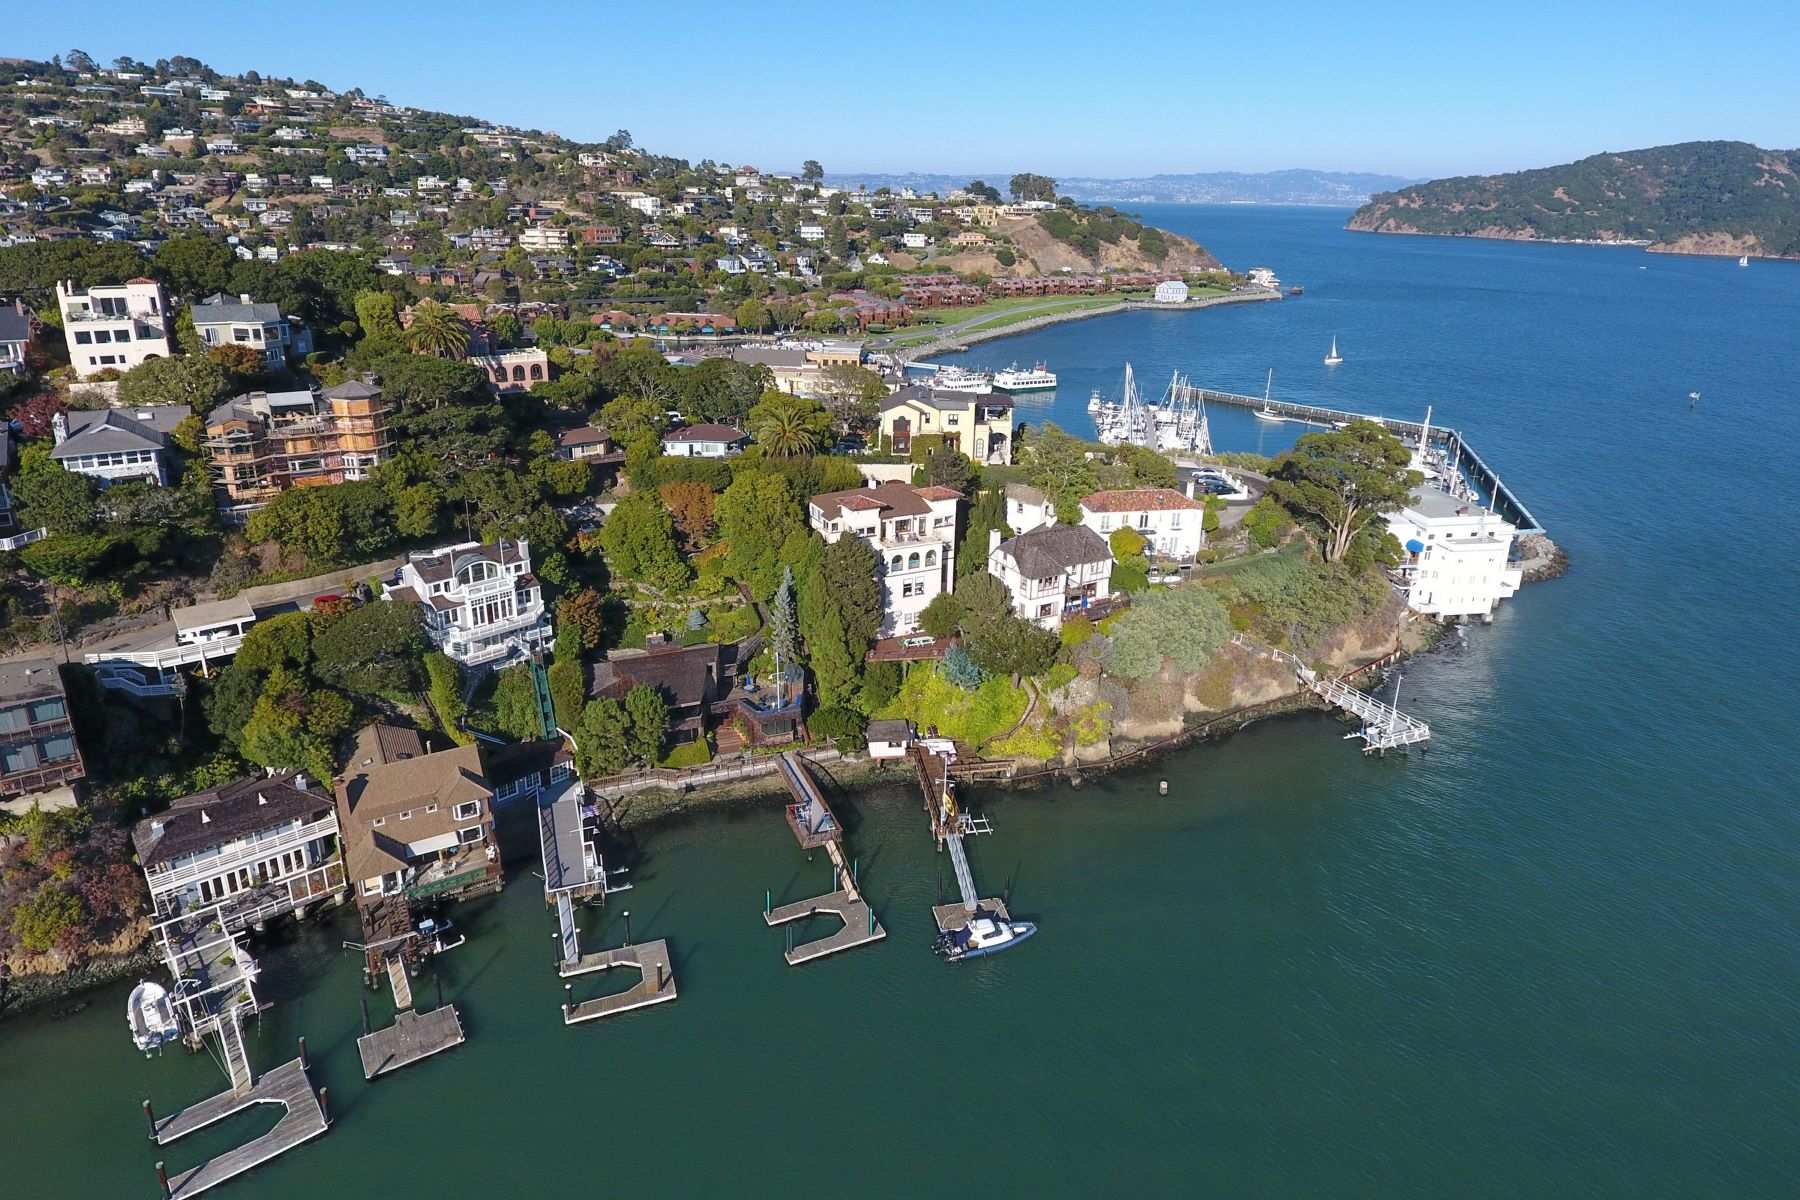 Single Family Home for Sale at Prime Waterfront Home with Boat Dock and Beach House 71 Bellevue Avenue Belvedere, California, 94920 United States